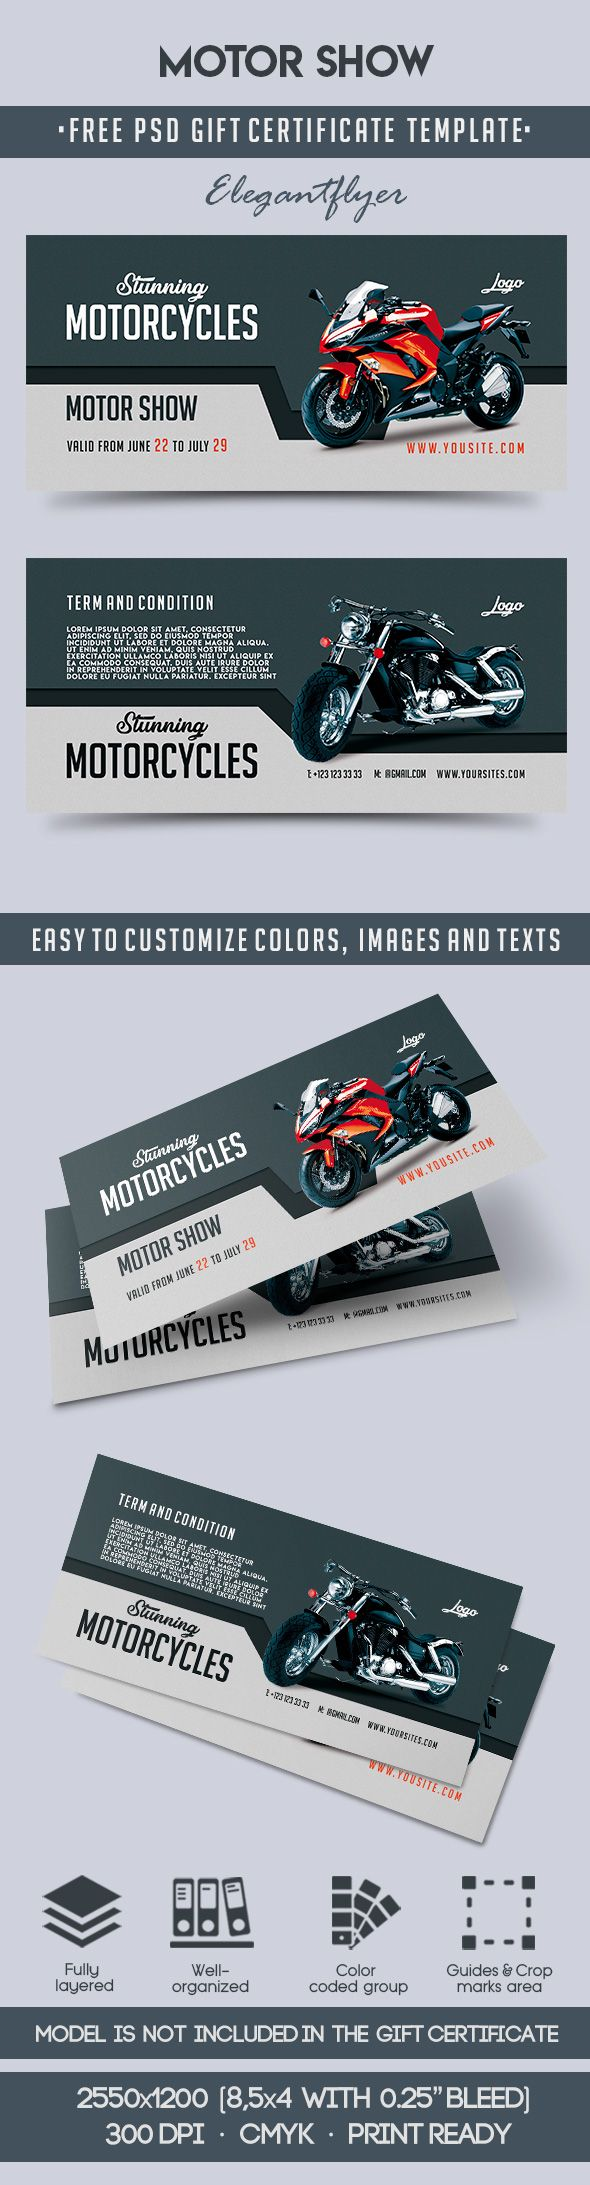 Motor Show – Free Gift Certificate PSD Template